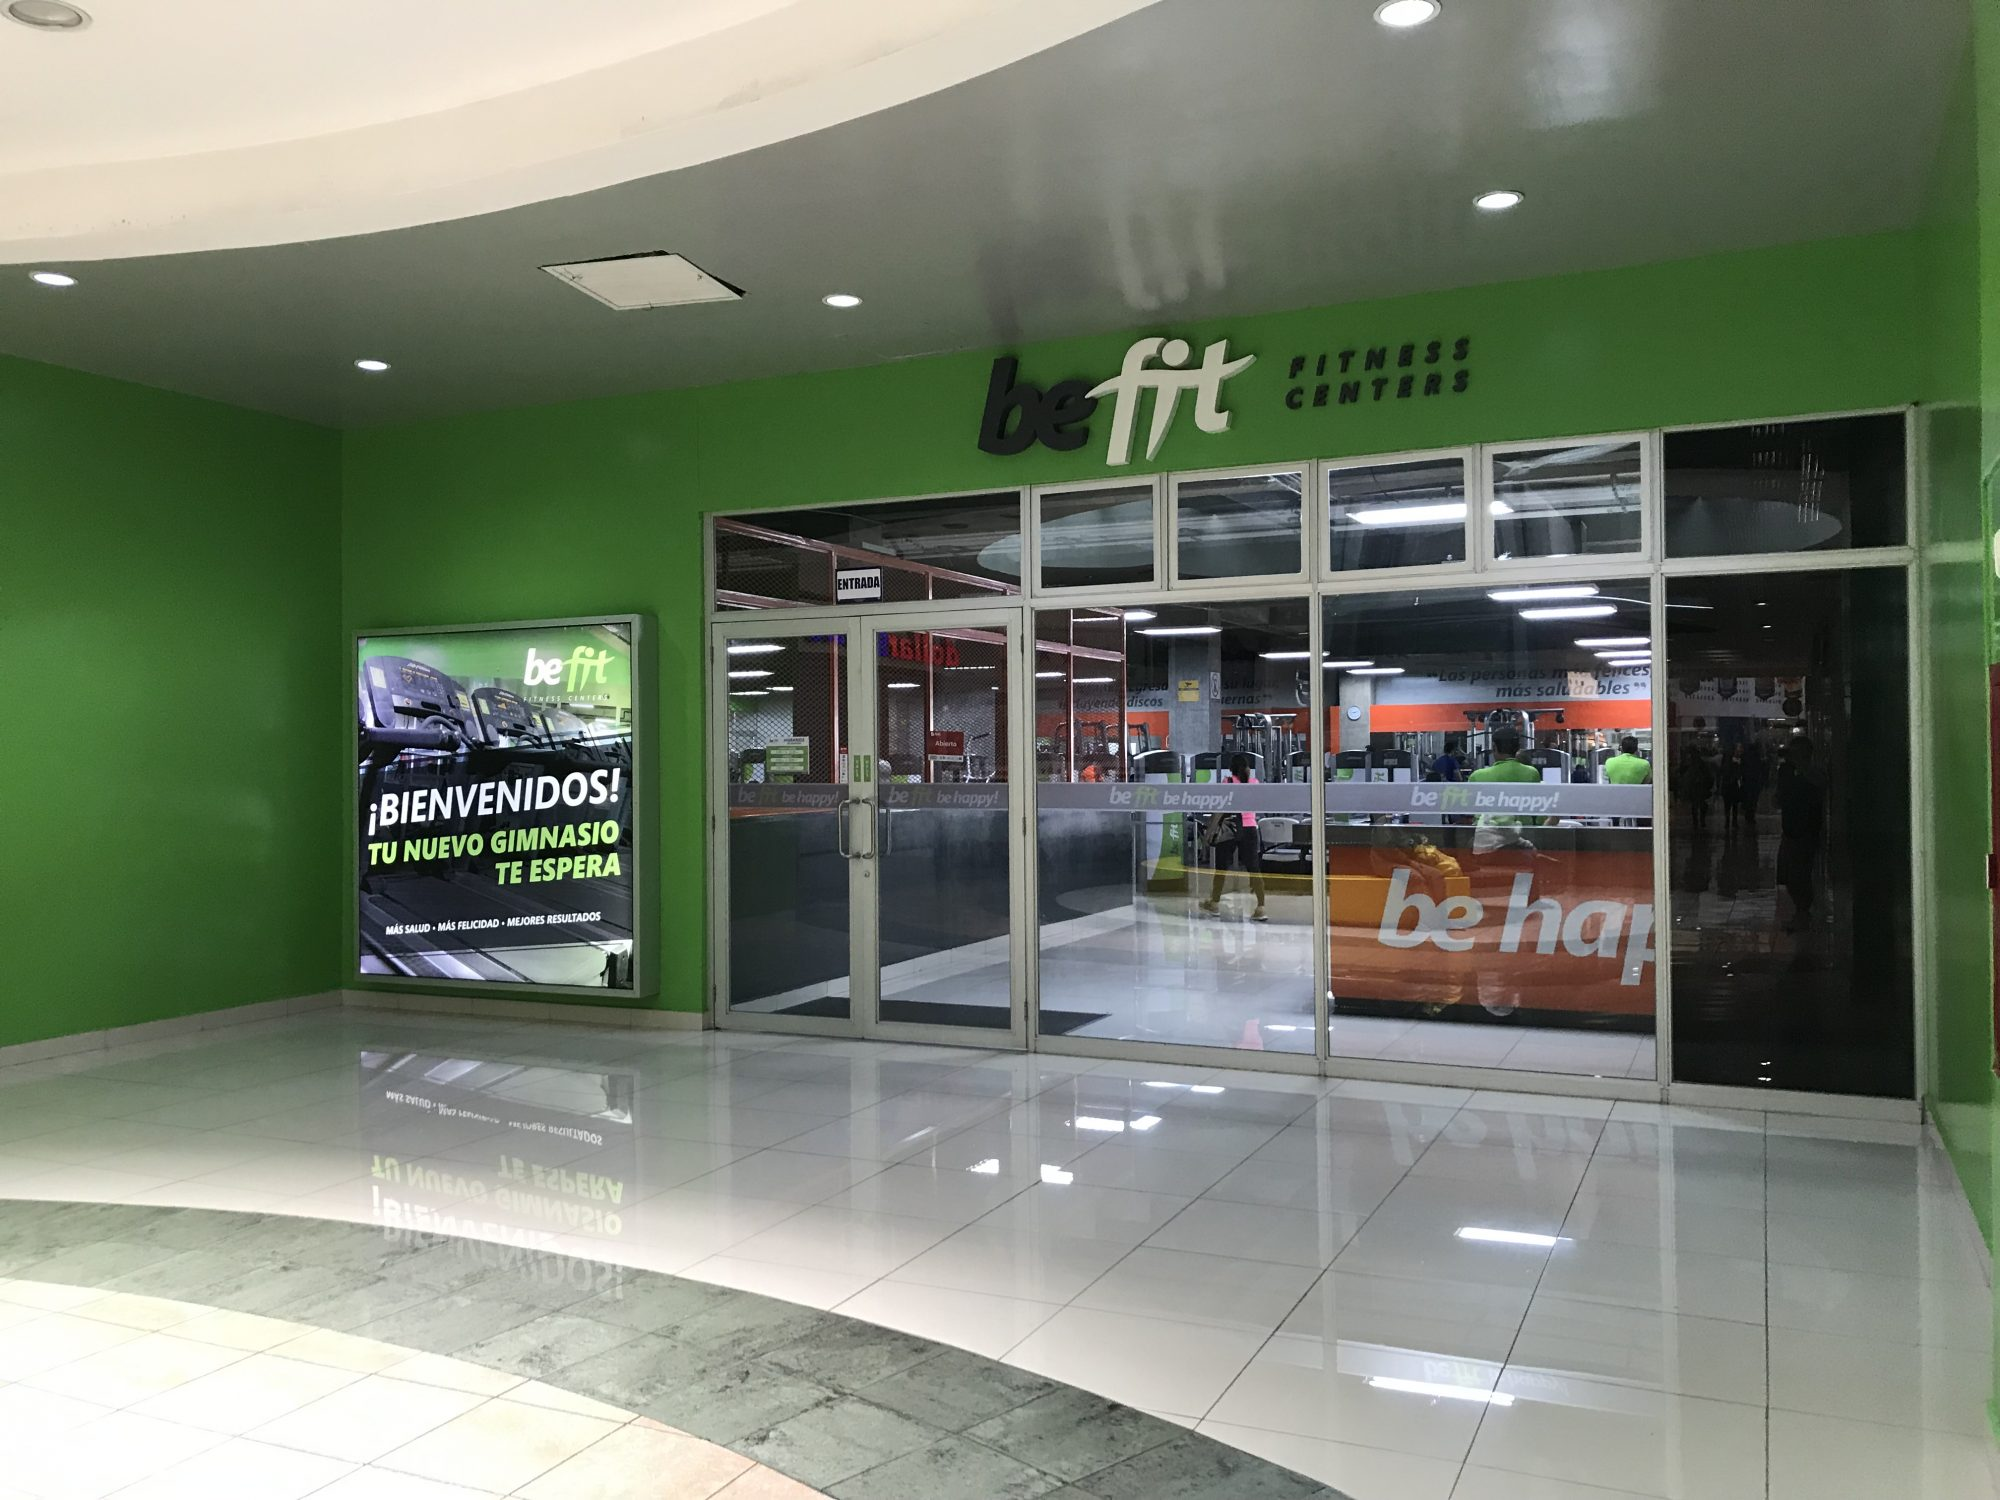 Joining The Gym – BeFit – Plaza Mundo, El Salvador